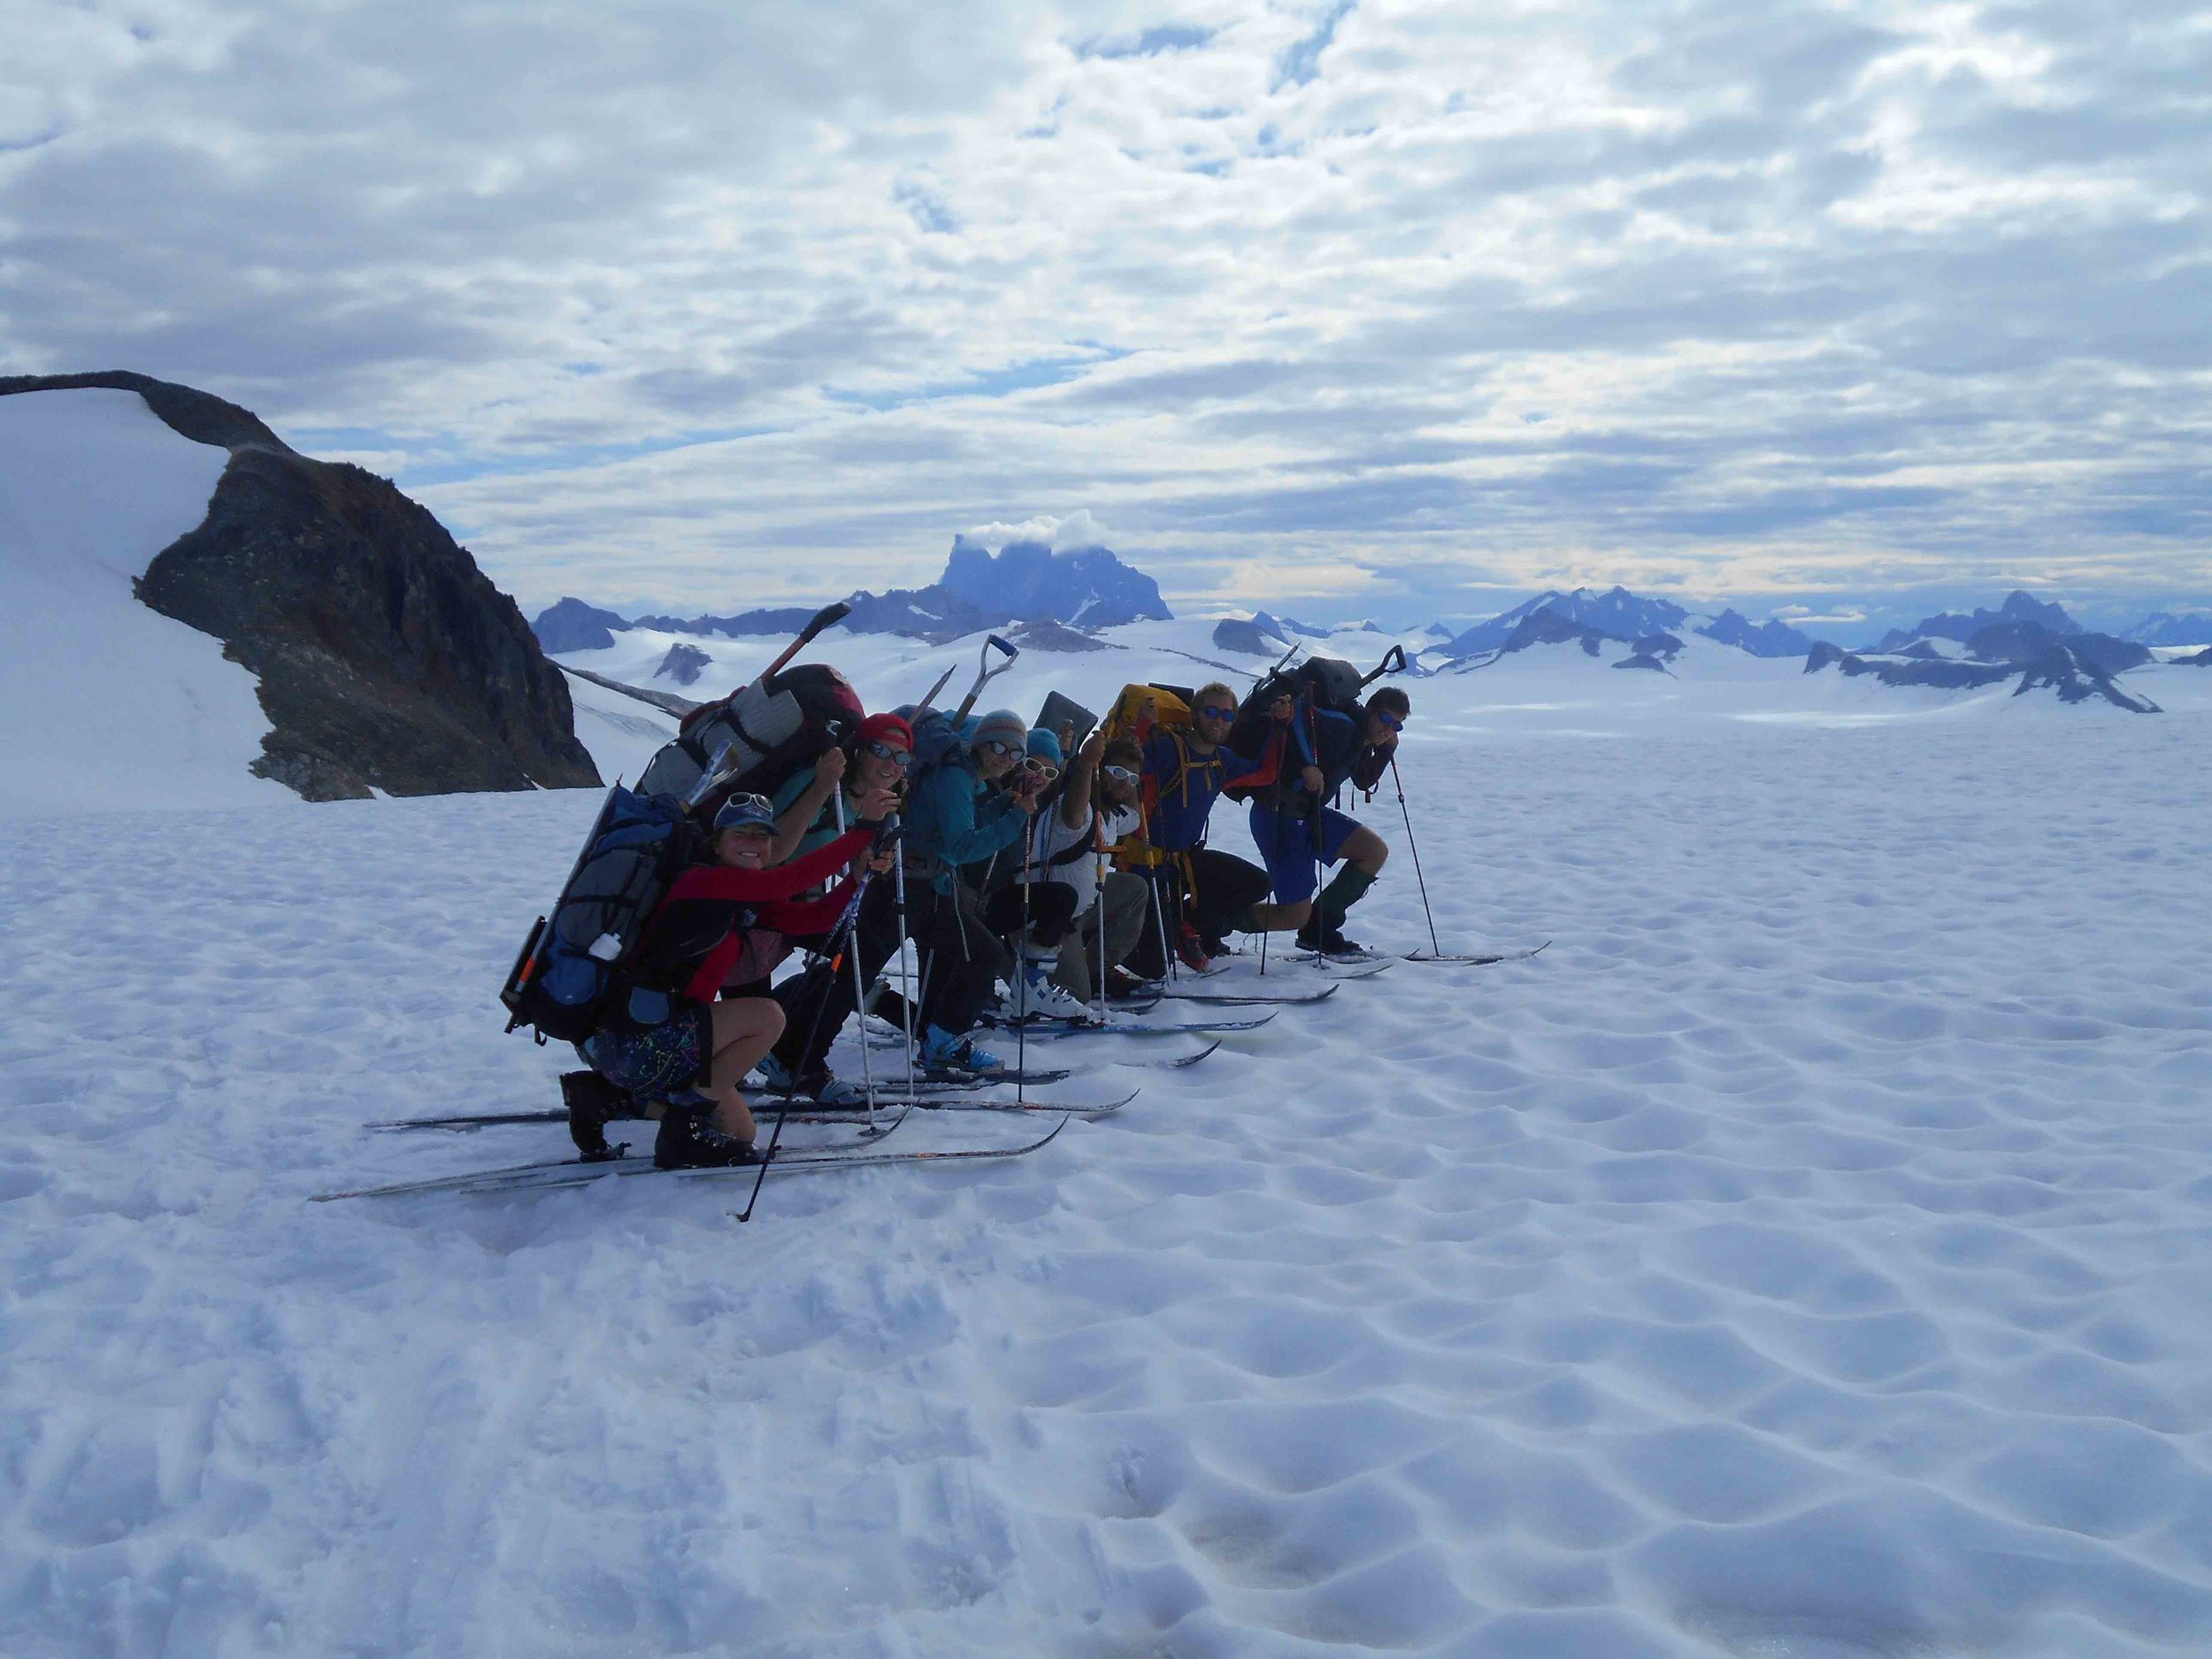 The mass-balance crew on the morning before skiing to the Demorest Glacier pit. Photo by Mary Gianotti.